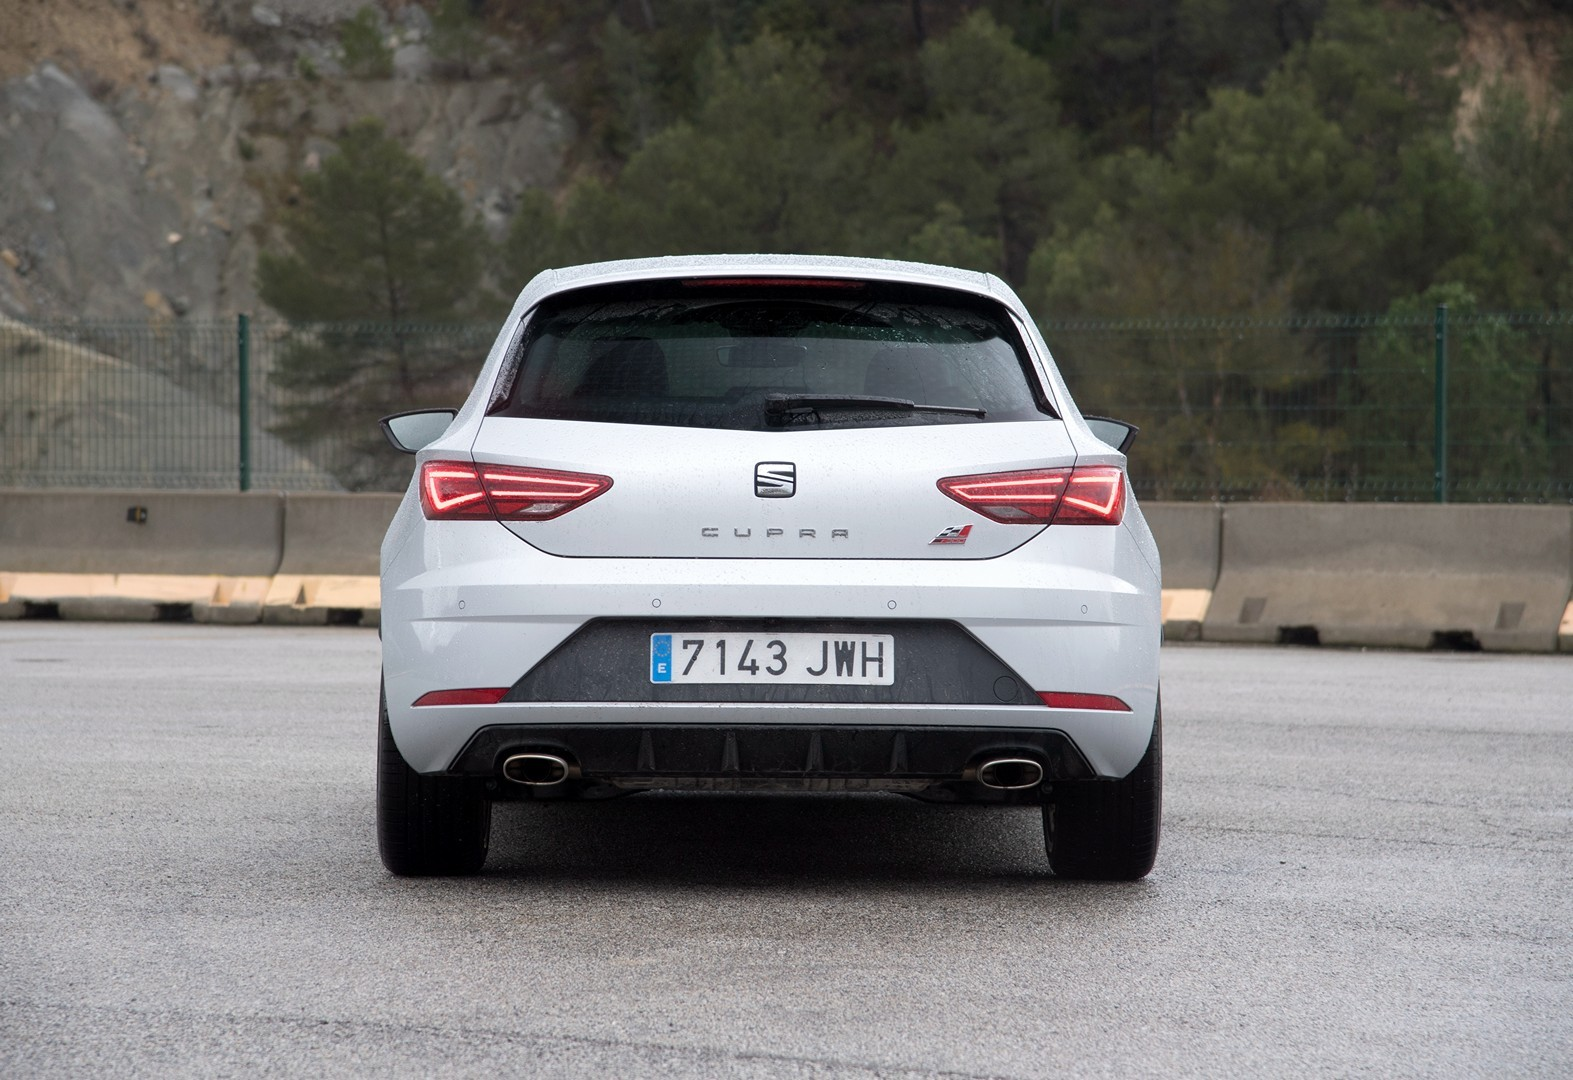 new leon cupra 300 39 s awd system discussed in 1 hour review autoevolution. Black Bedroom Furniture Sets. Home Design Ideas